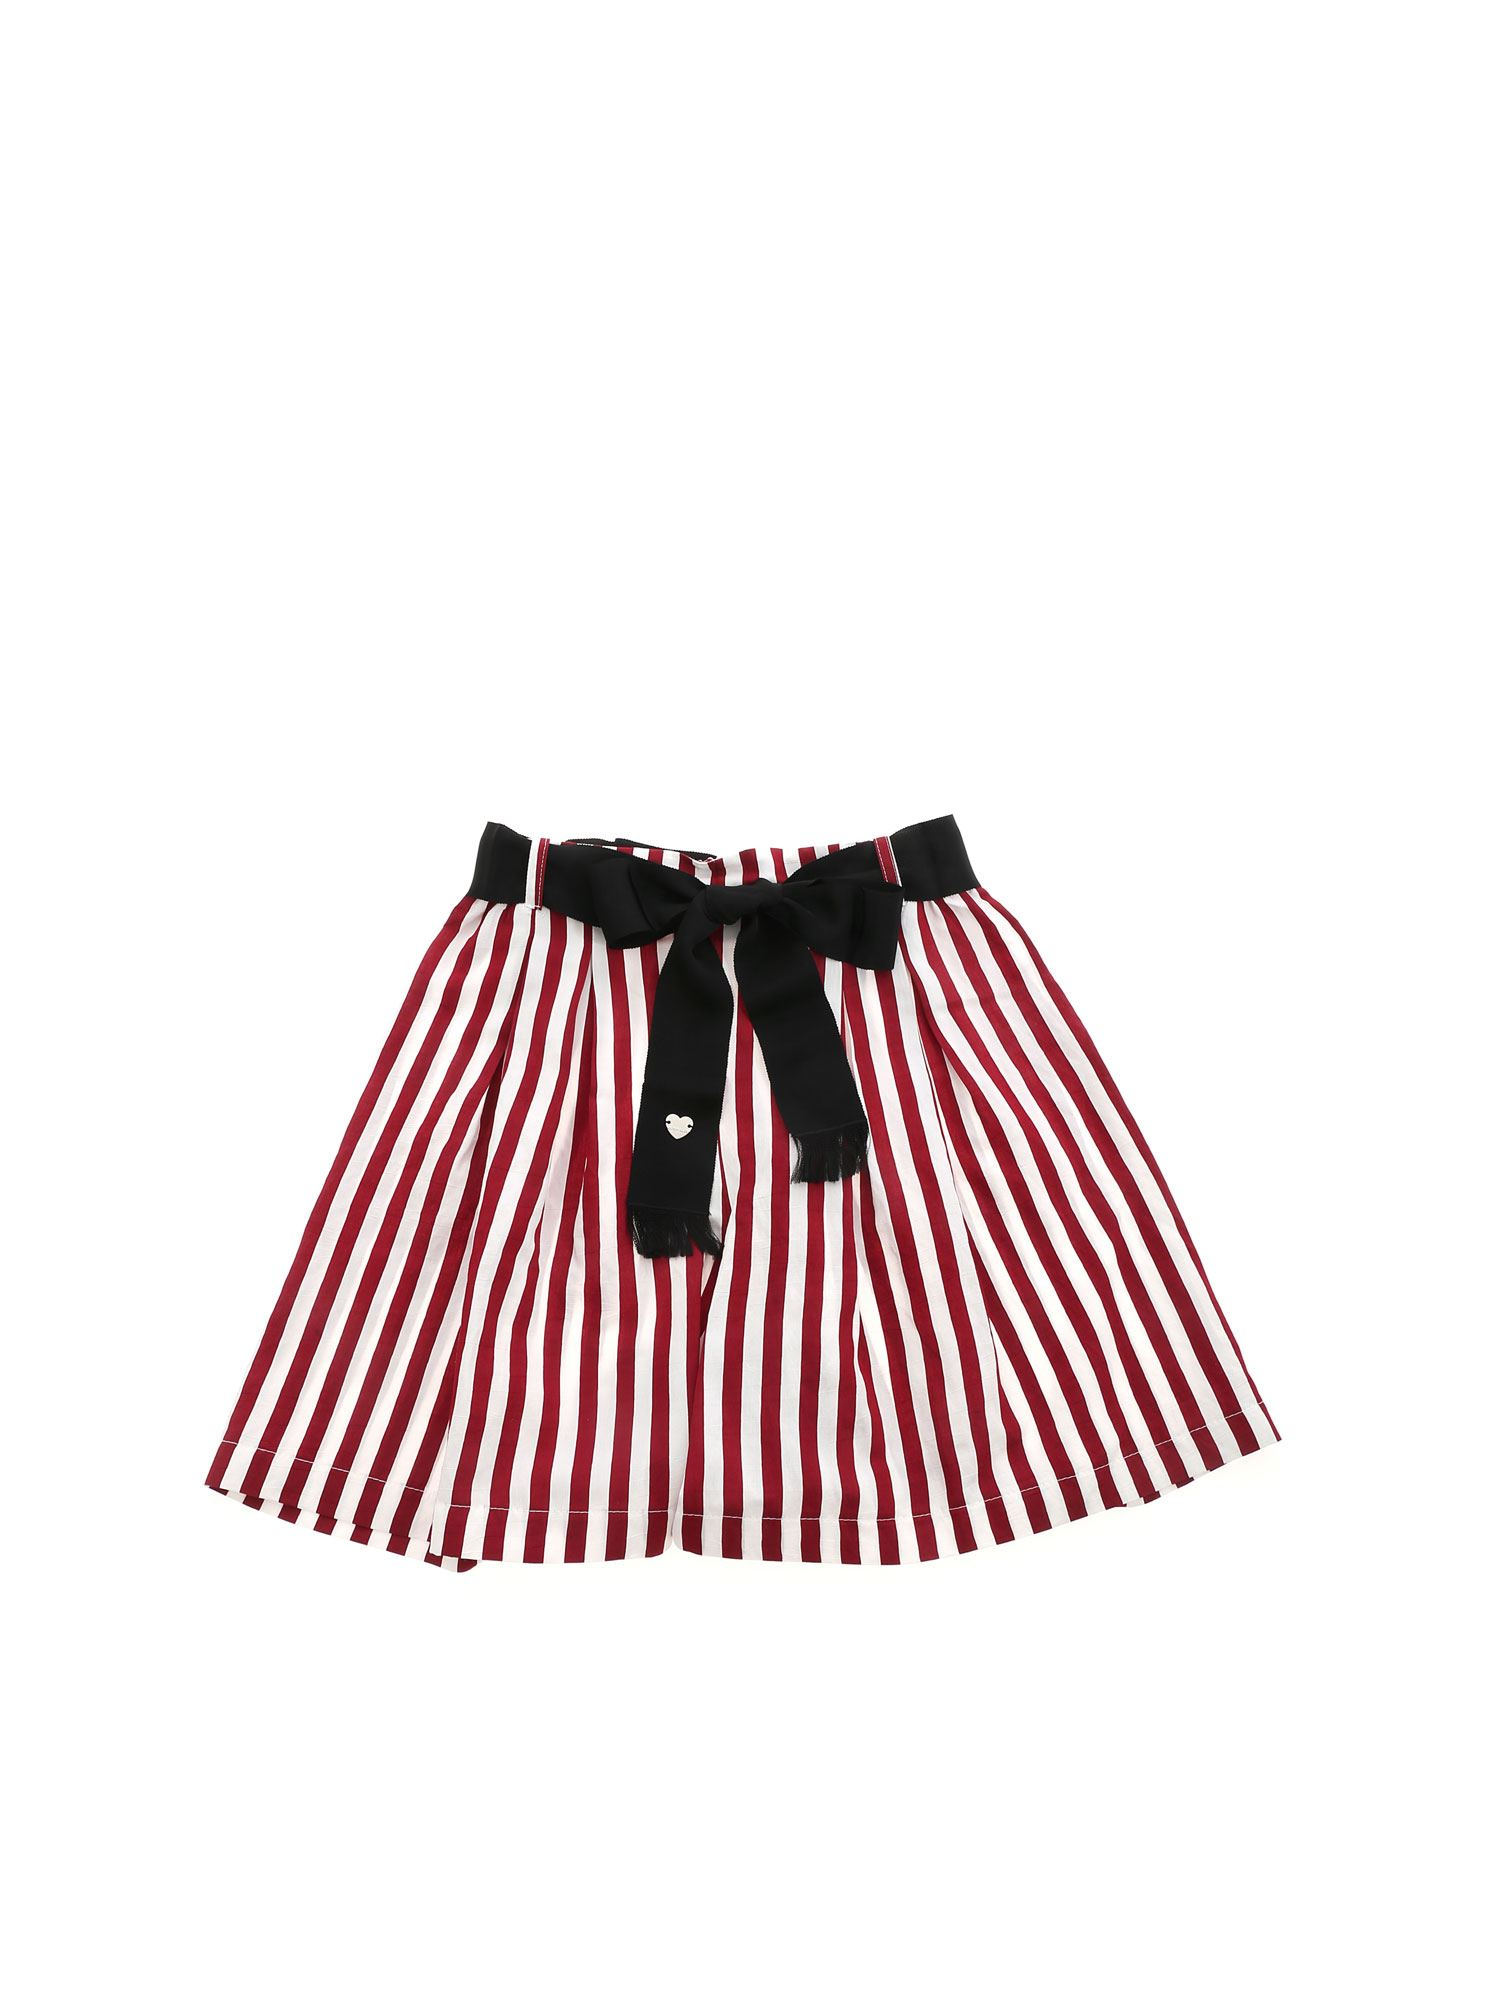 Monnalisa Shorts BURGUNDY STRIPES SHORTS IN WHITE